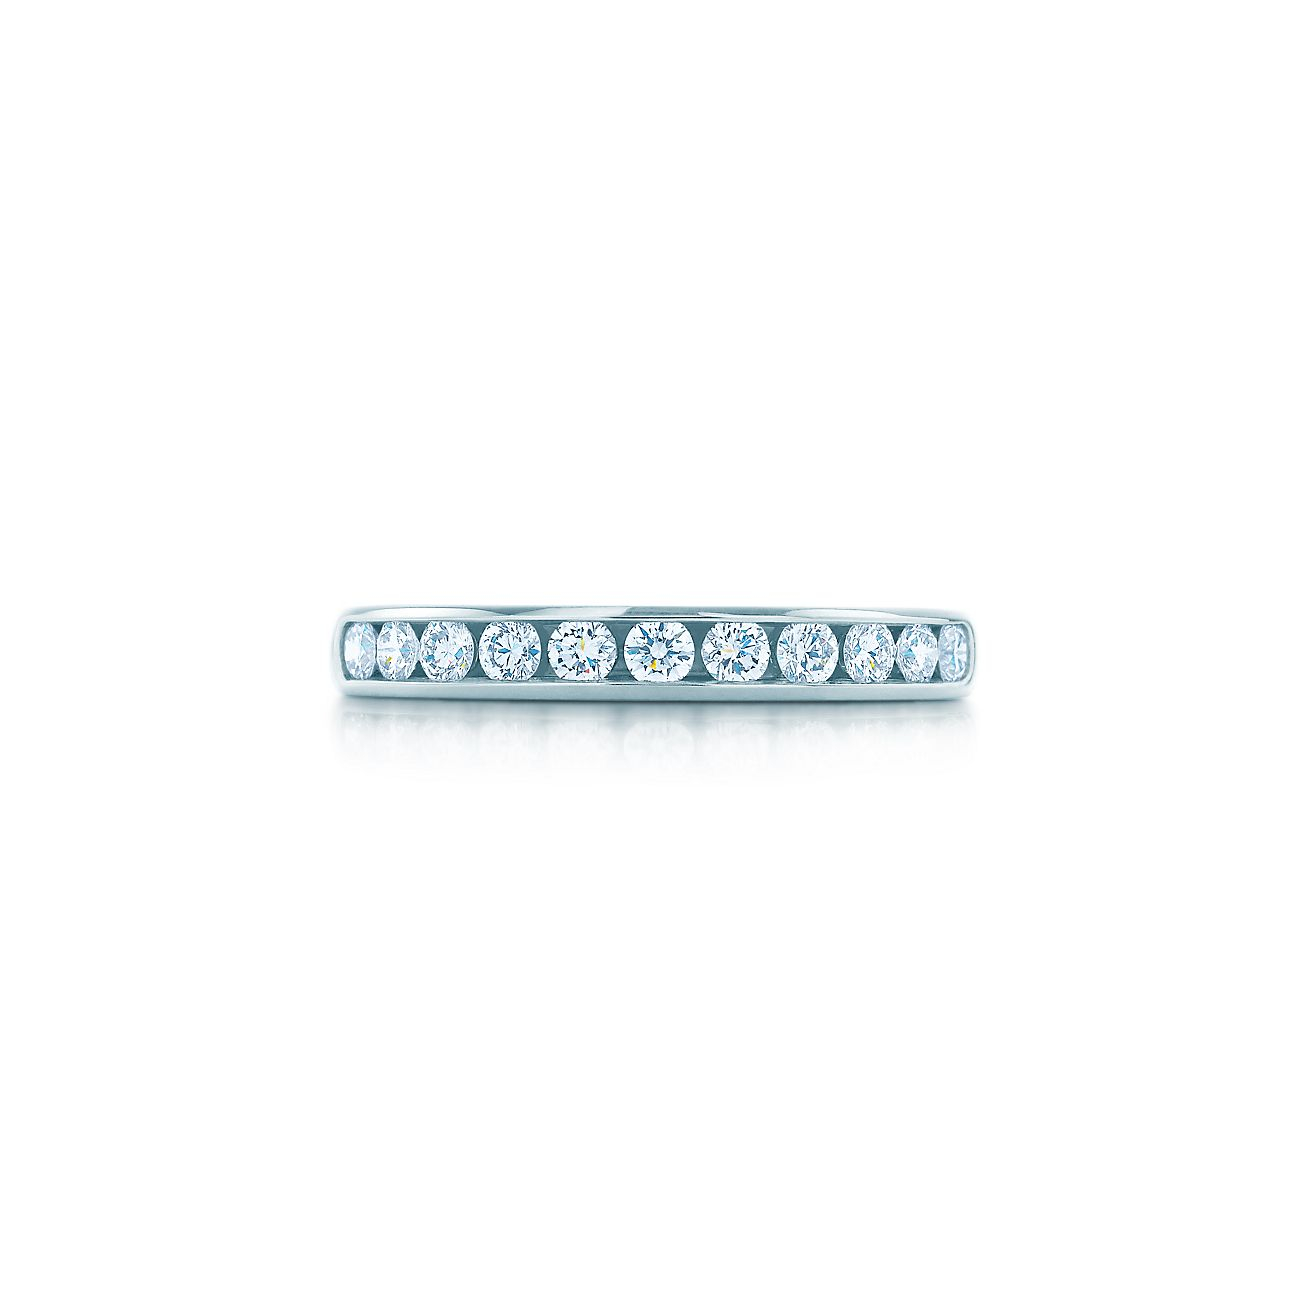 Tiffany diamond wedding band in platinum 3 mm wide tiffany co tiffany diamond wedding band junglespirit Image collections